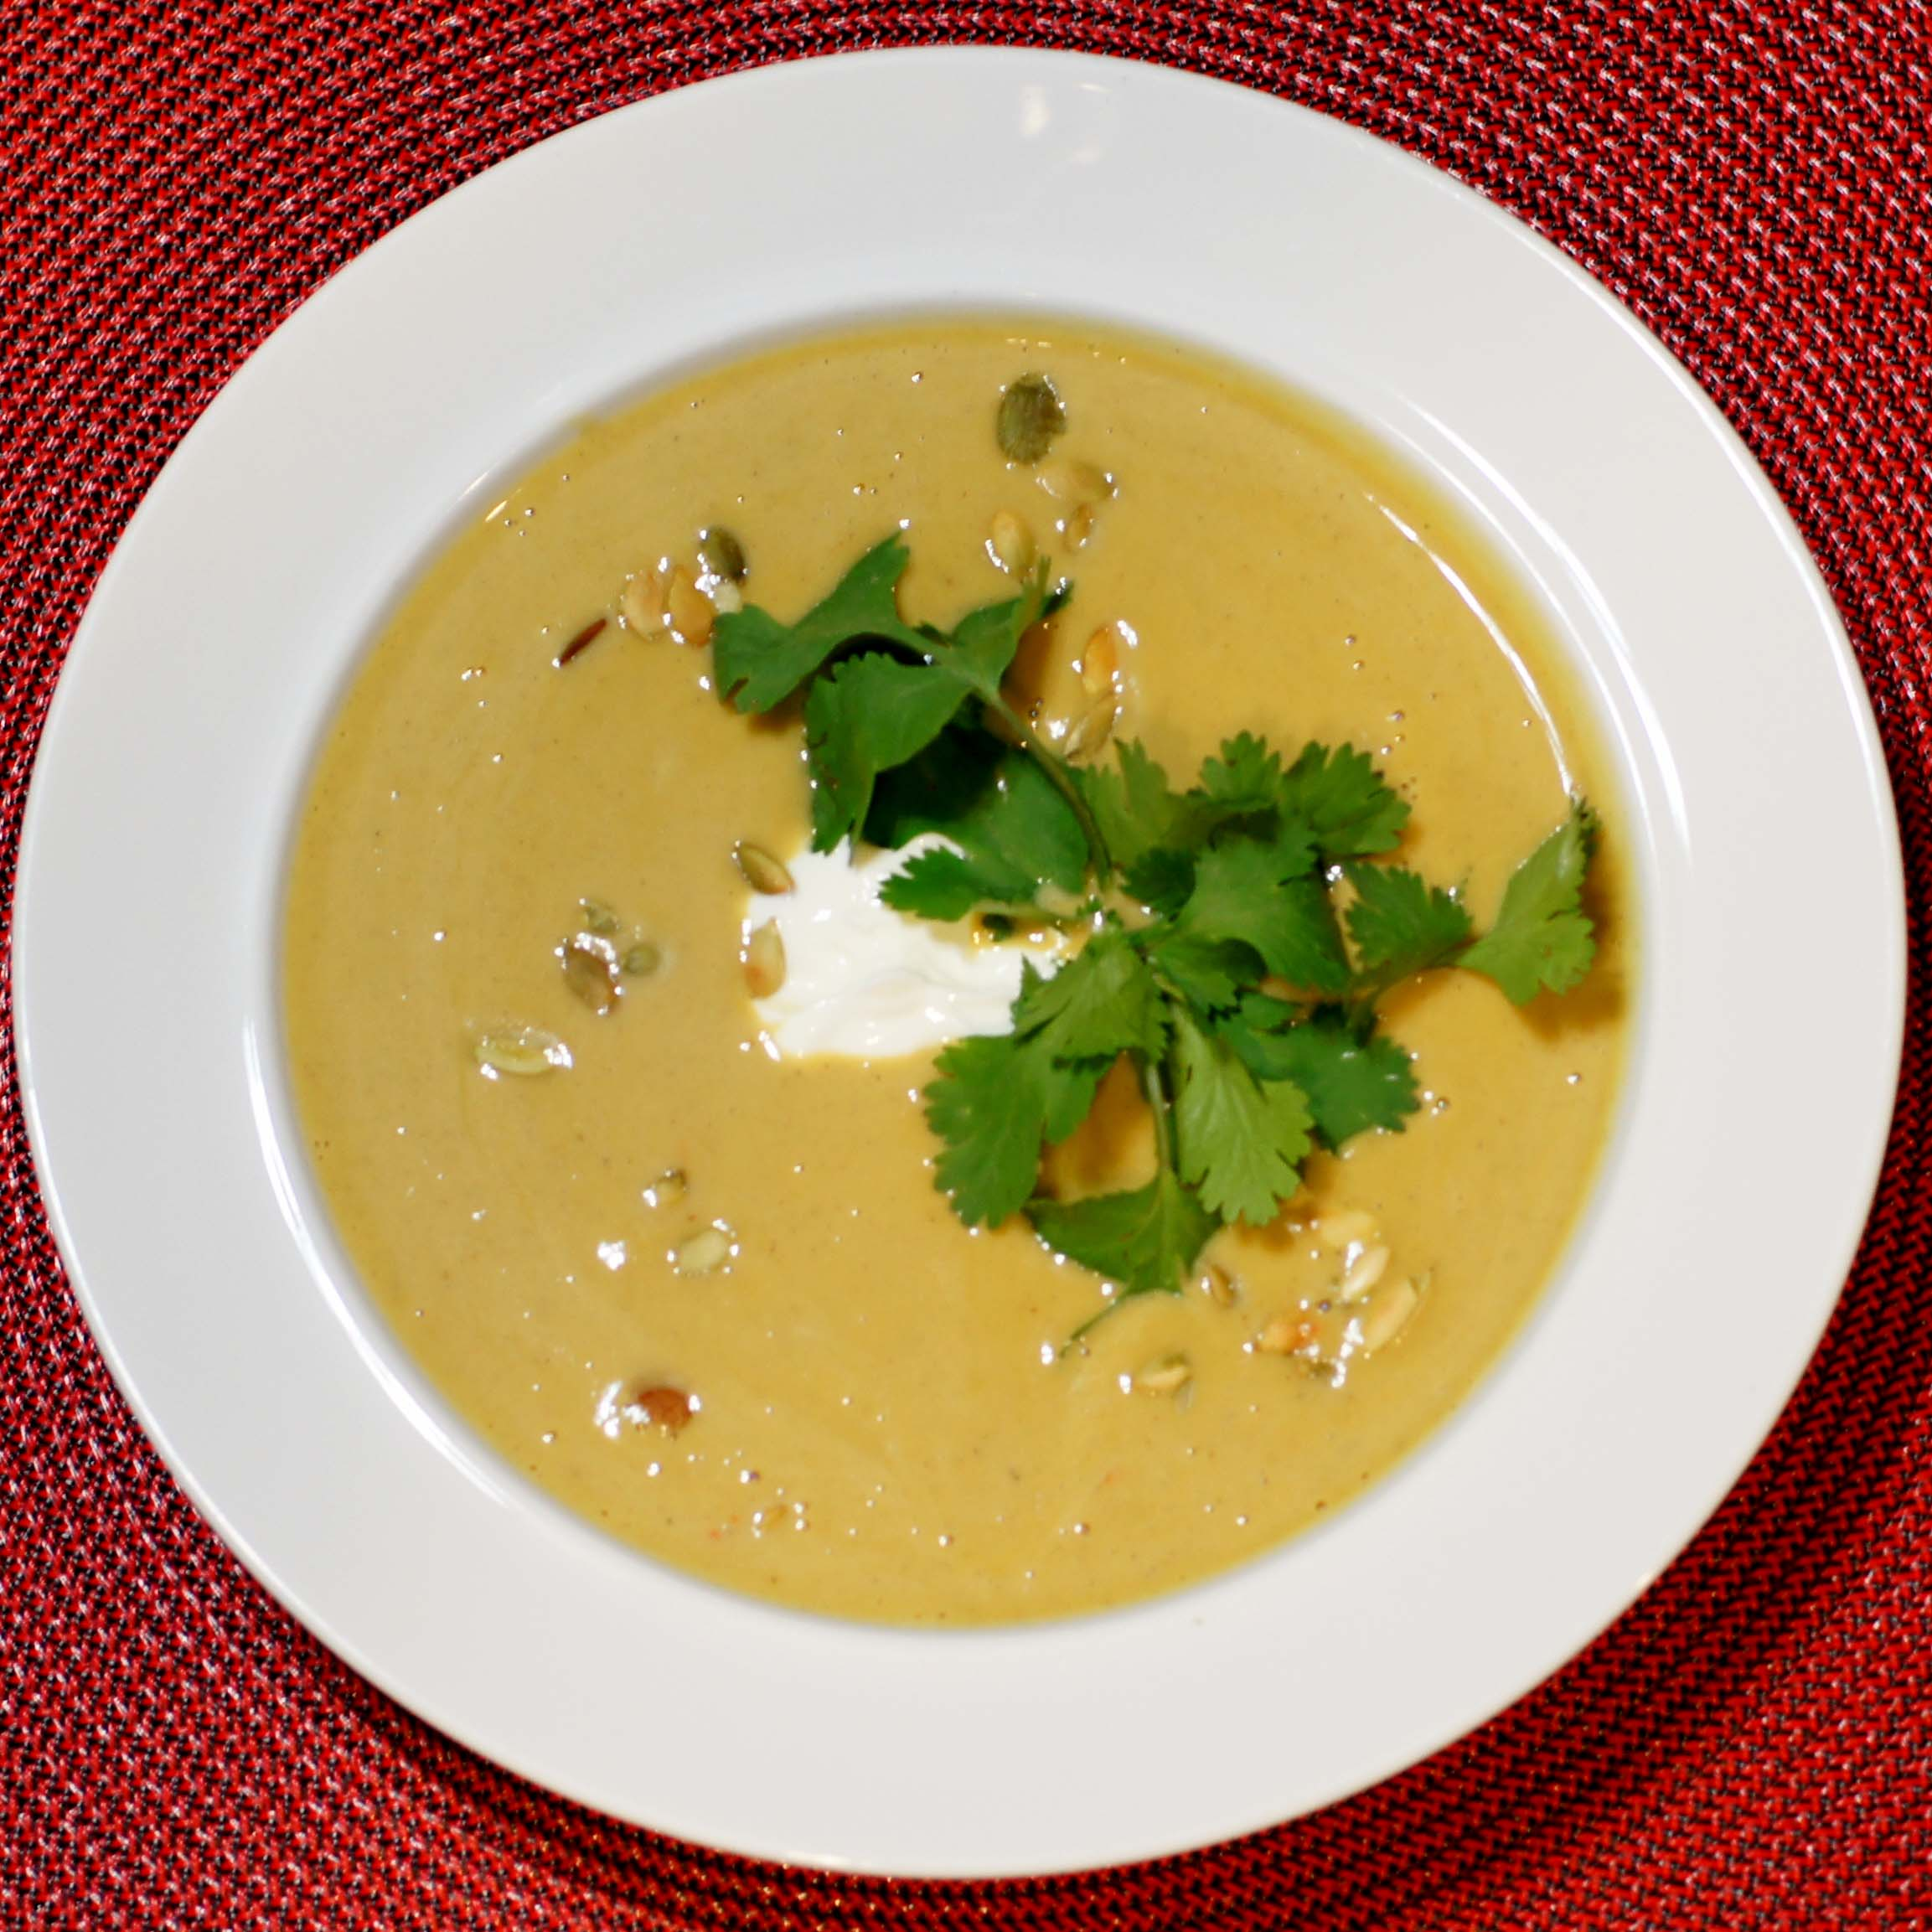 Delicious Pumpkin Soup With A Caribbean Flair